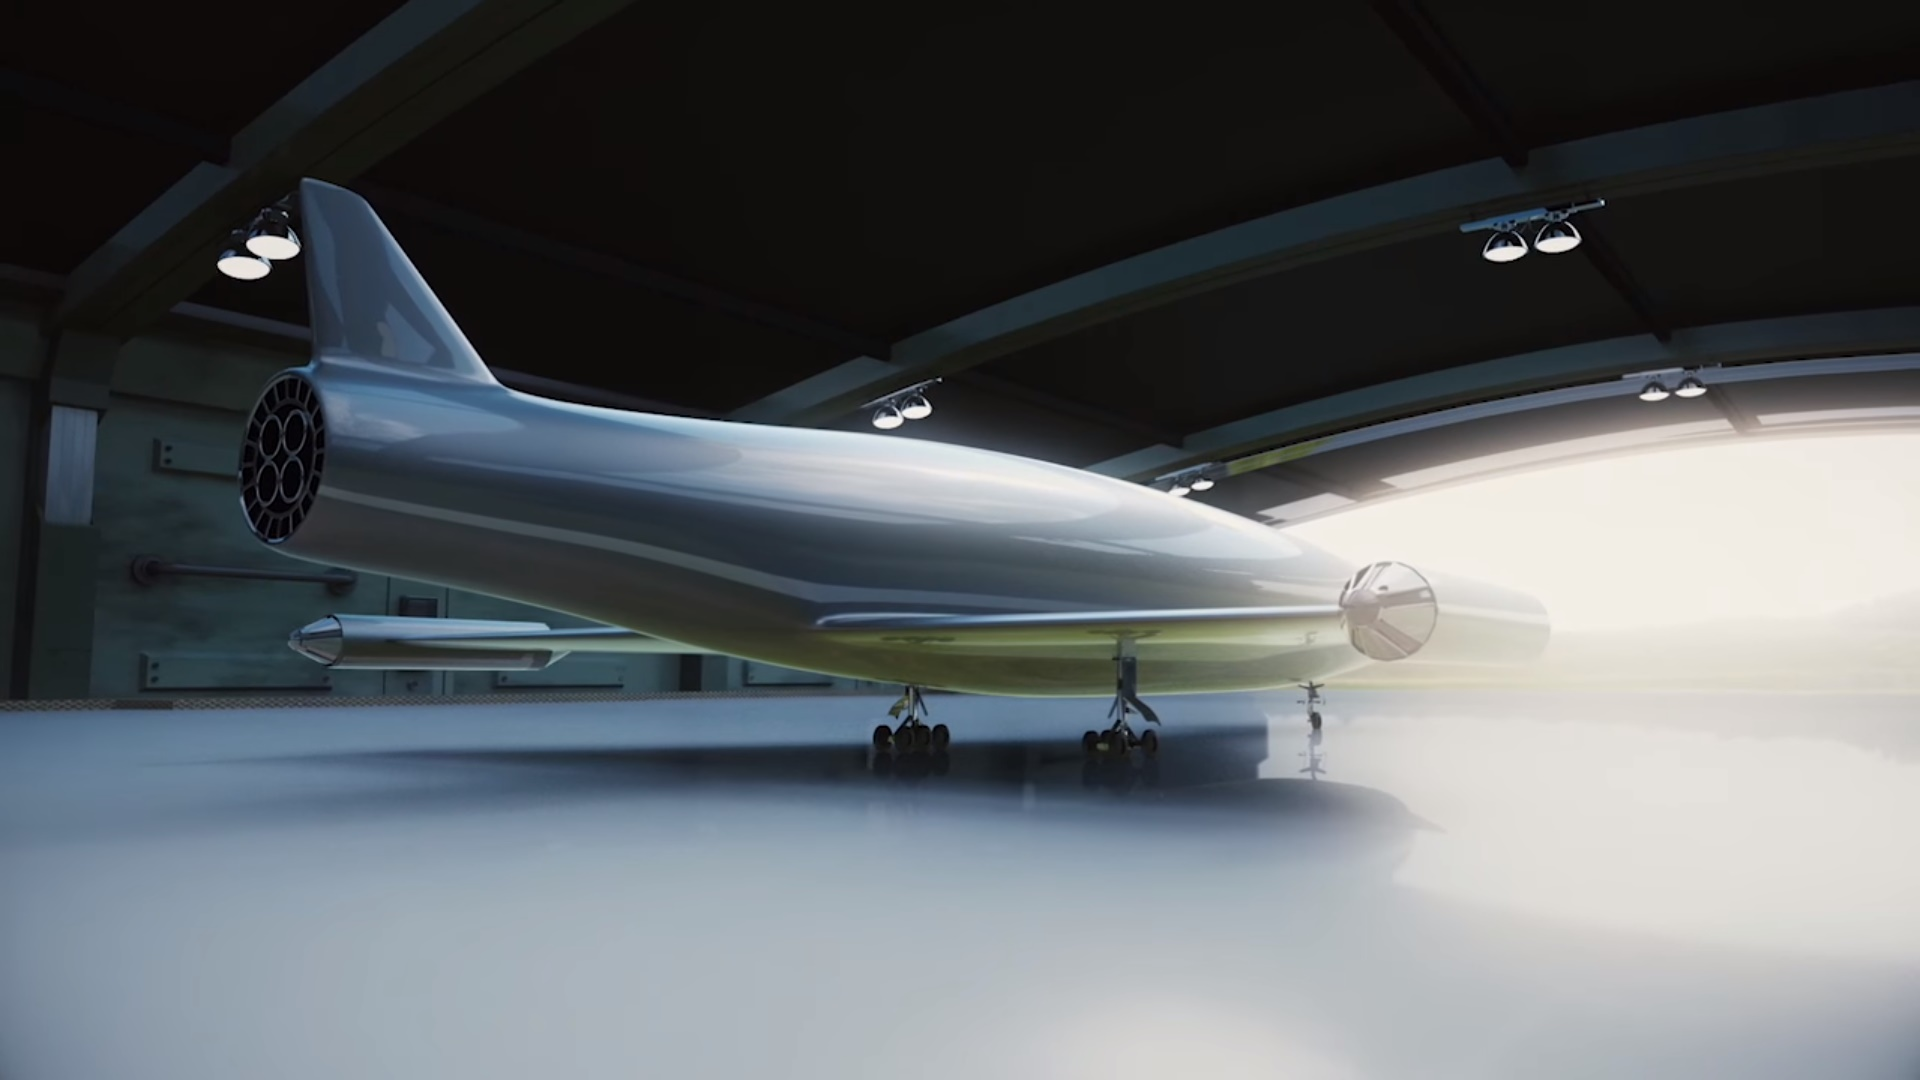 BAE Systems : Armed forces of the future could be using Hypersonic Rapid Response Aircraft